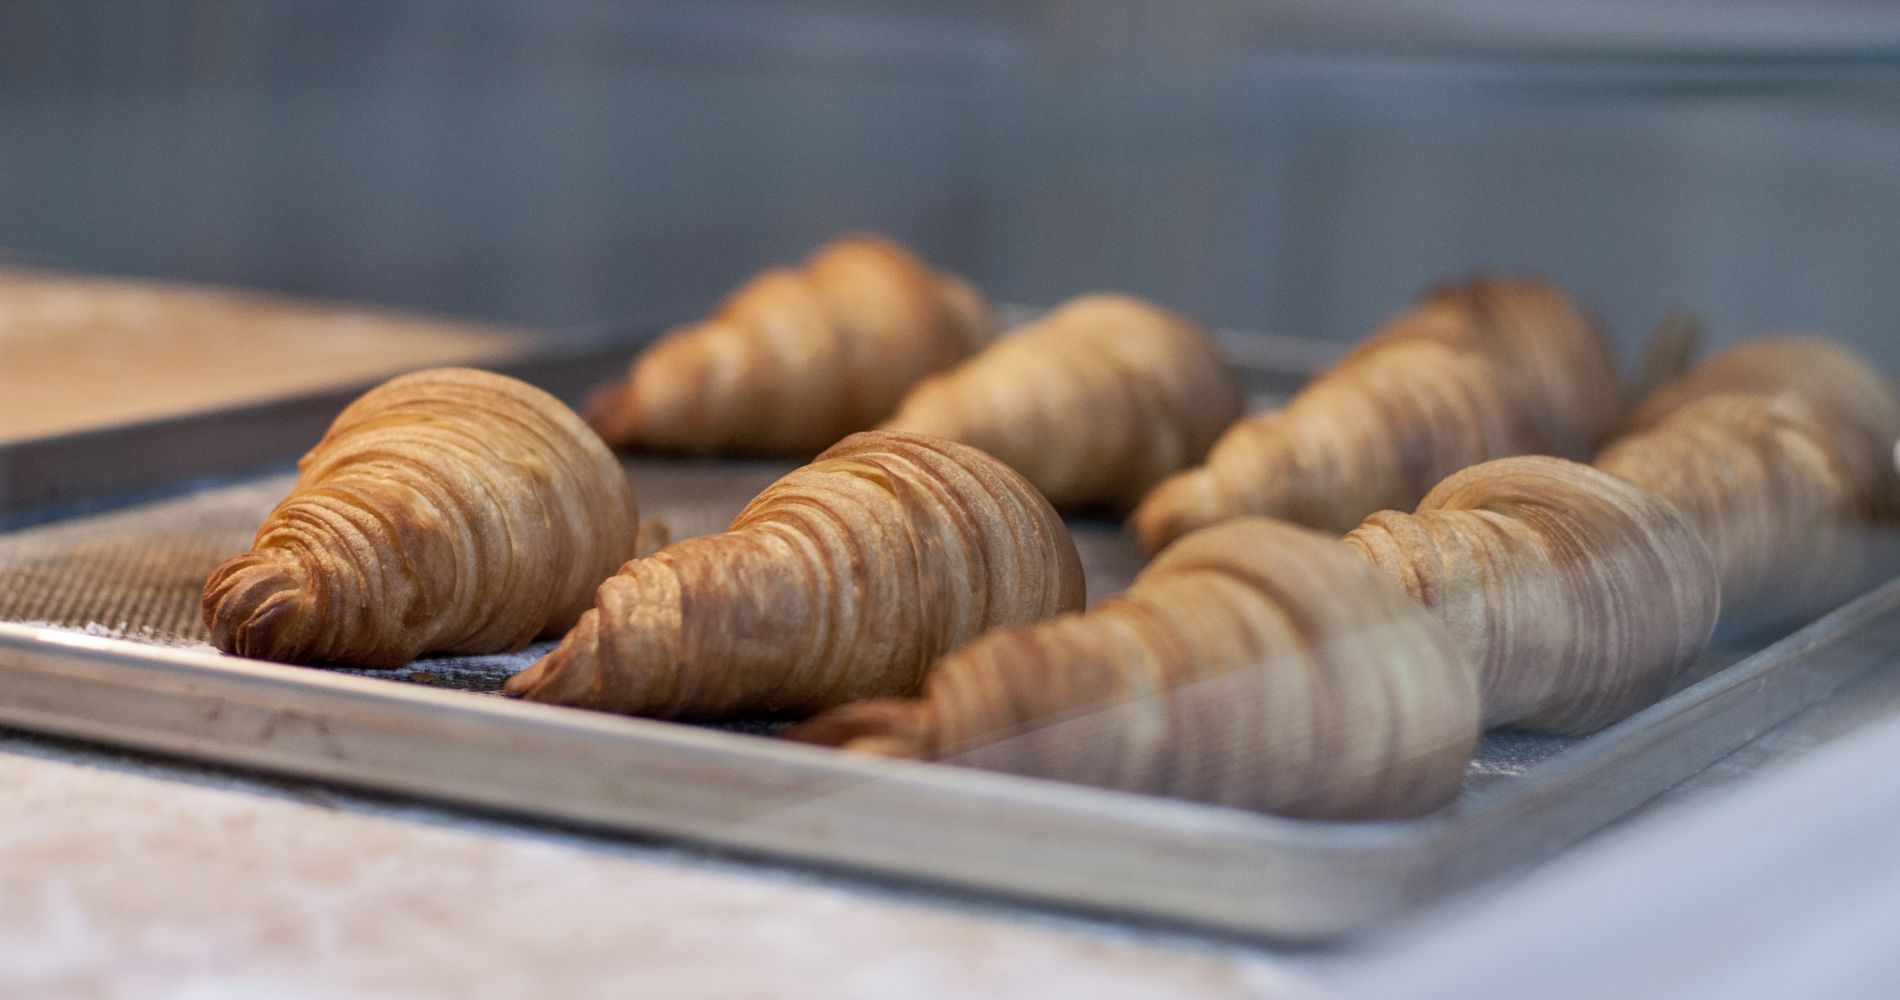 croissants making class lesson paris france gift idea